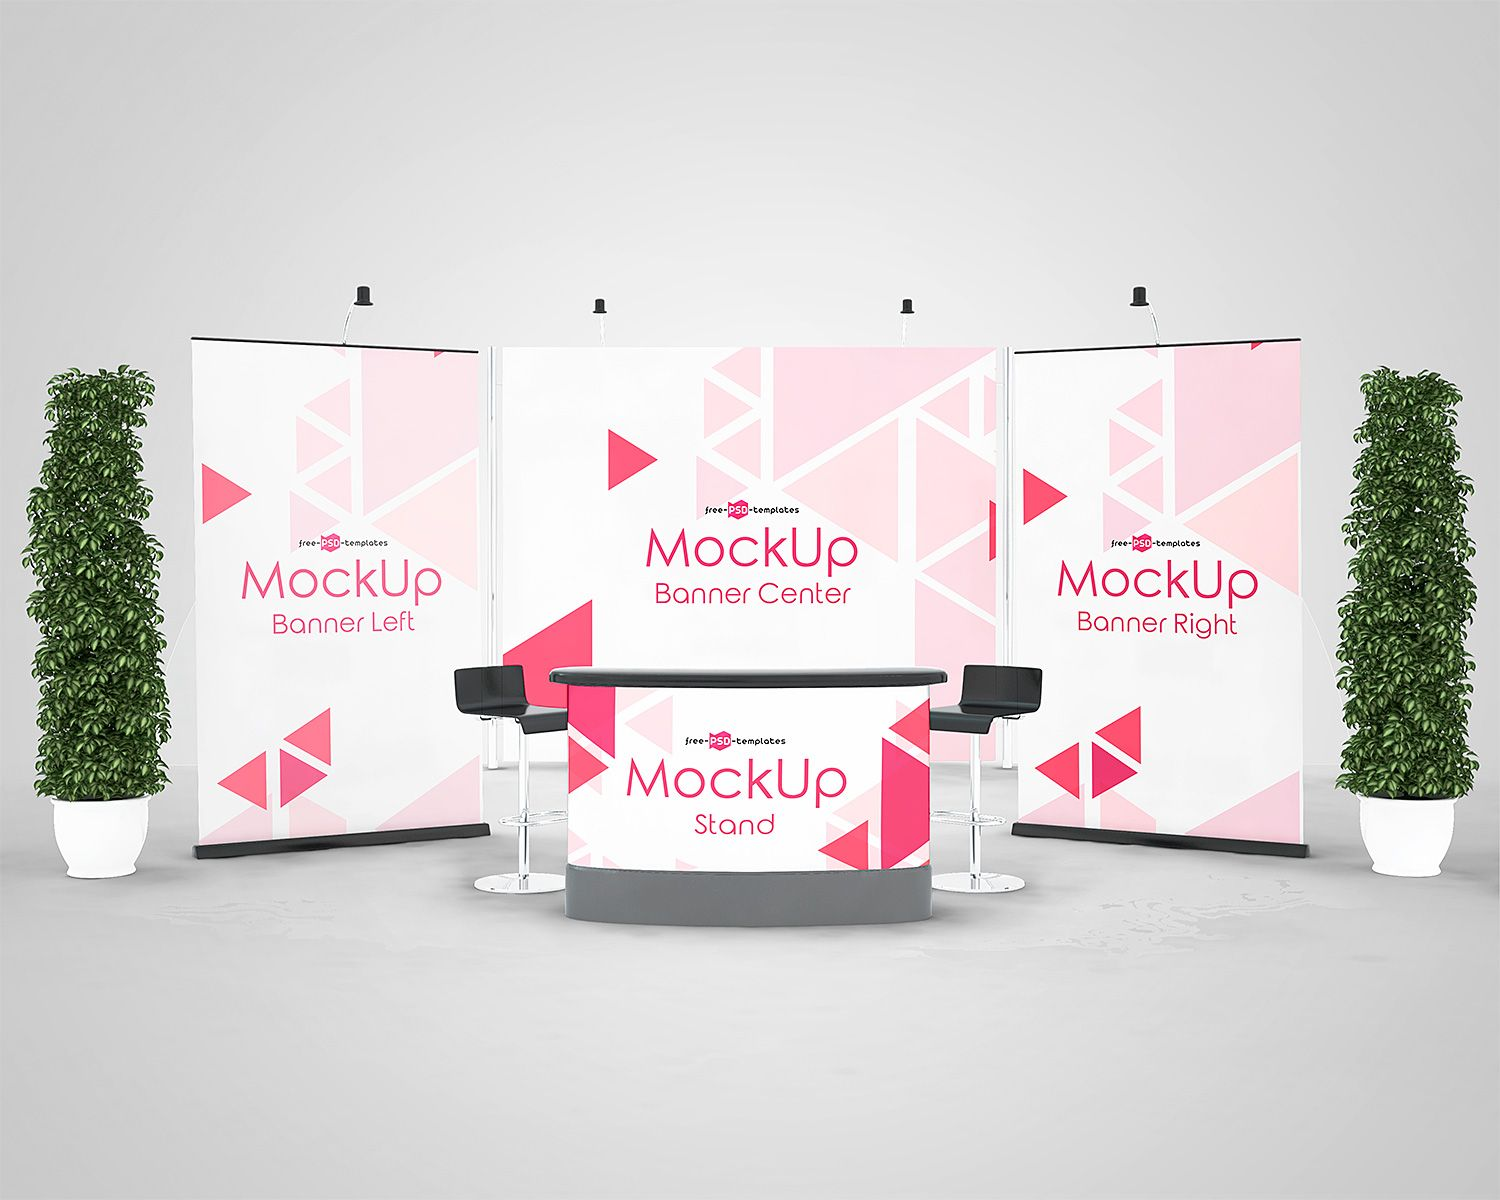 Exhibition Stand Mockup Psd Free : 3 exhibition stand mock ups free in psd freemockup mockup free